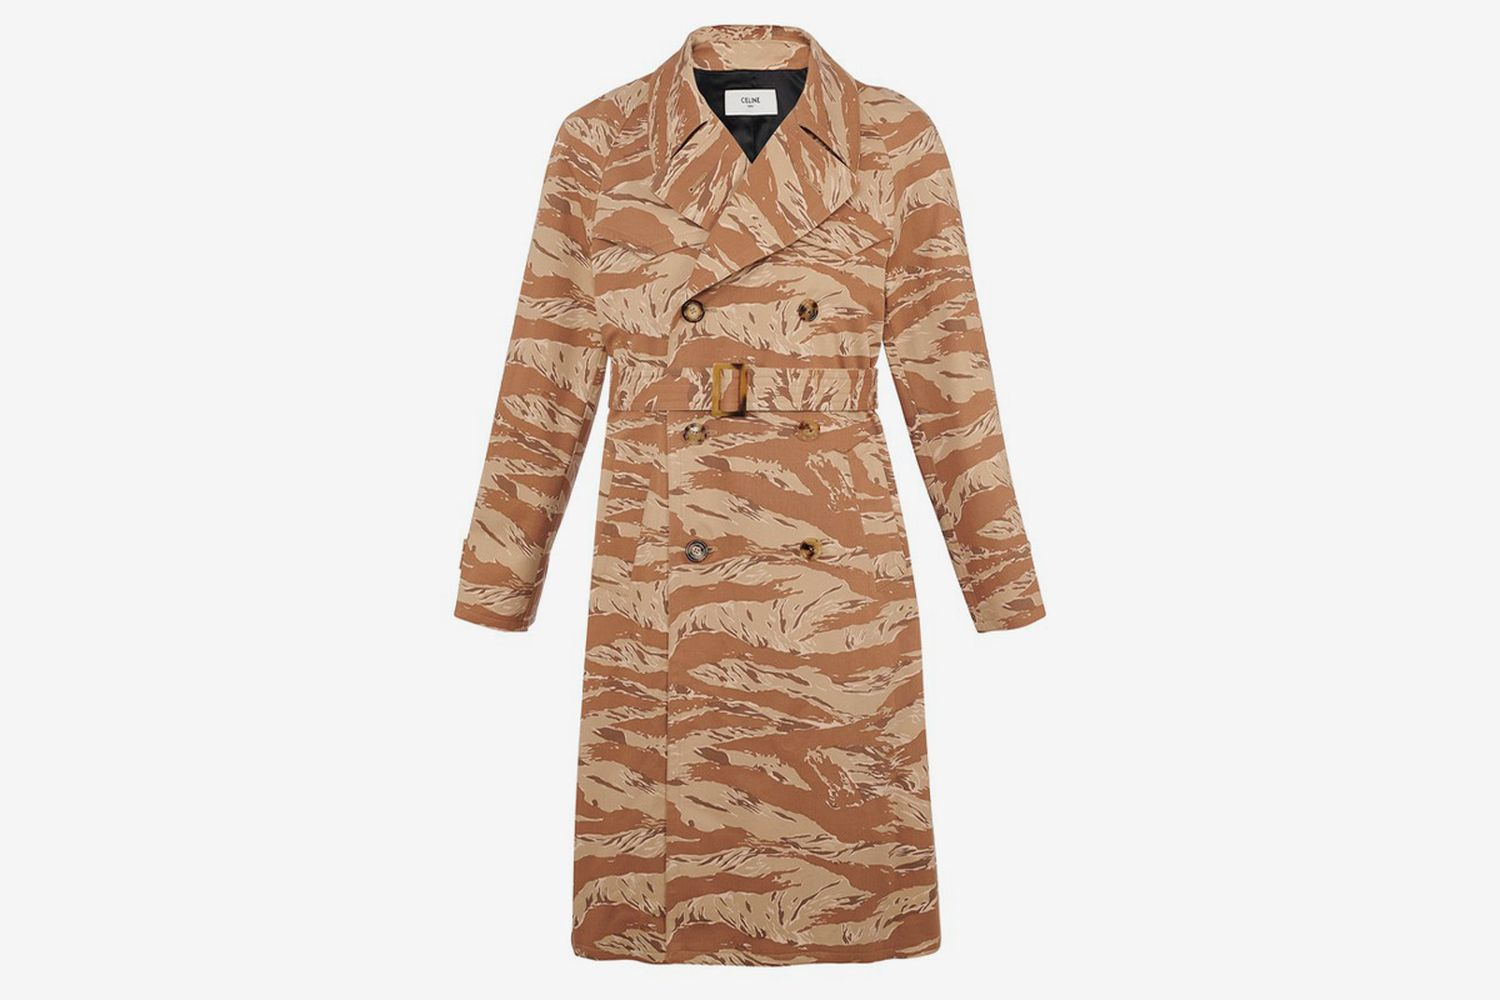 Western Camouflage Trench Coat